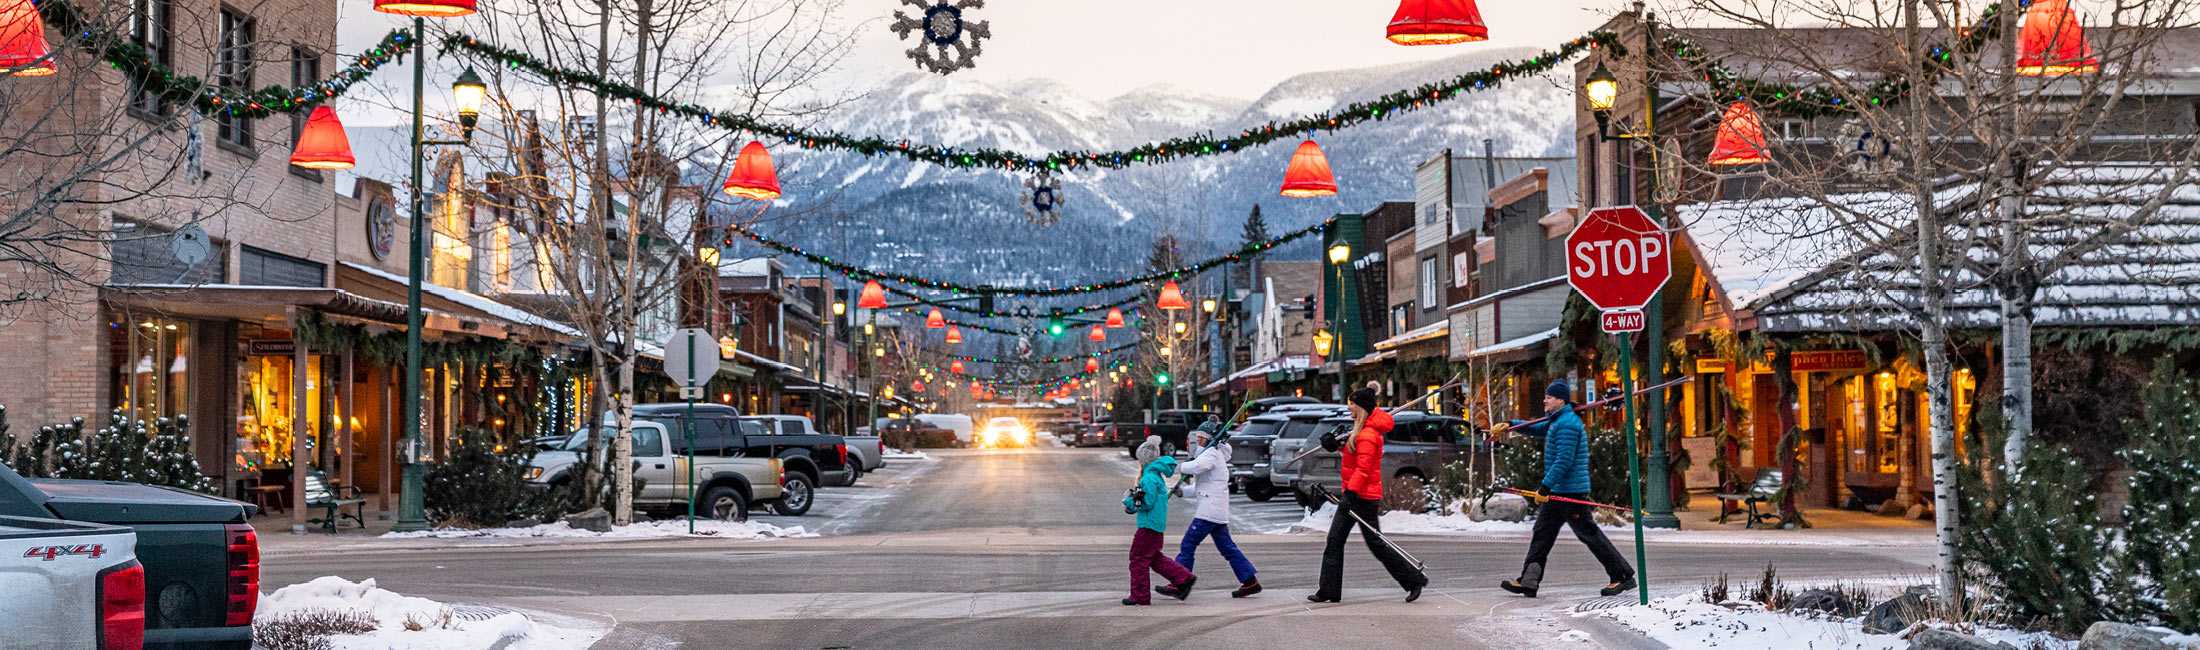 Whitefish, MT in Western Montana